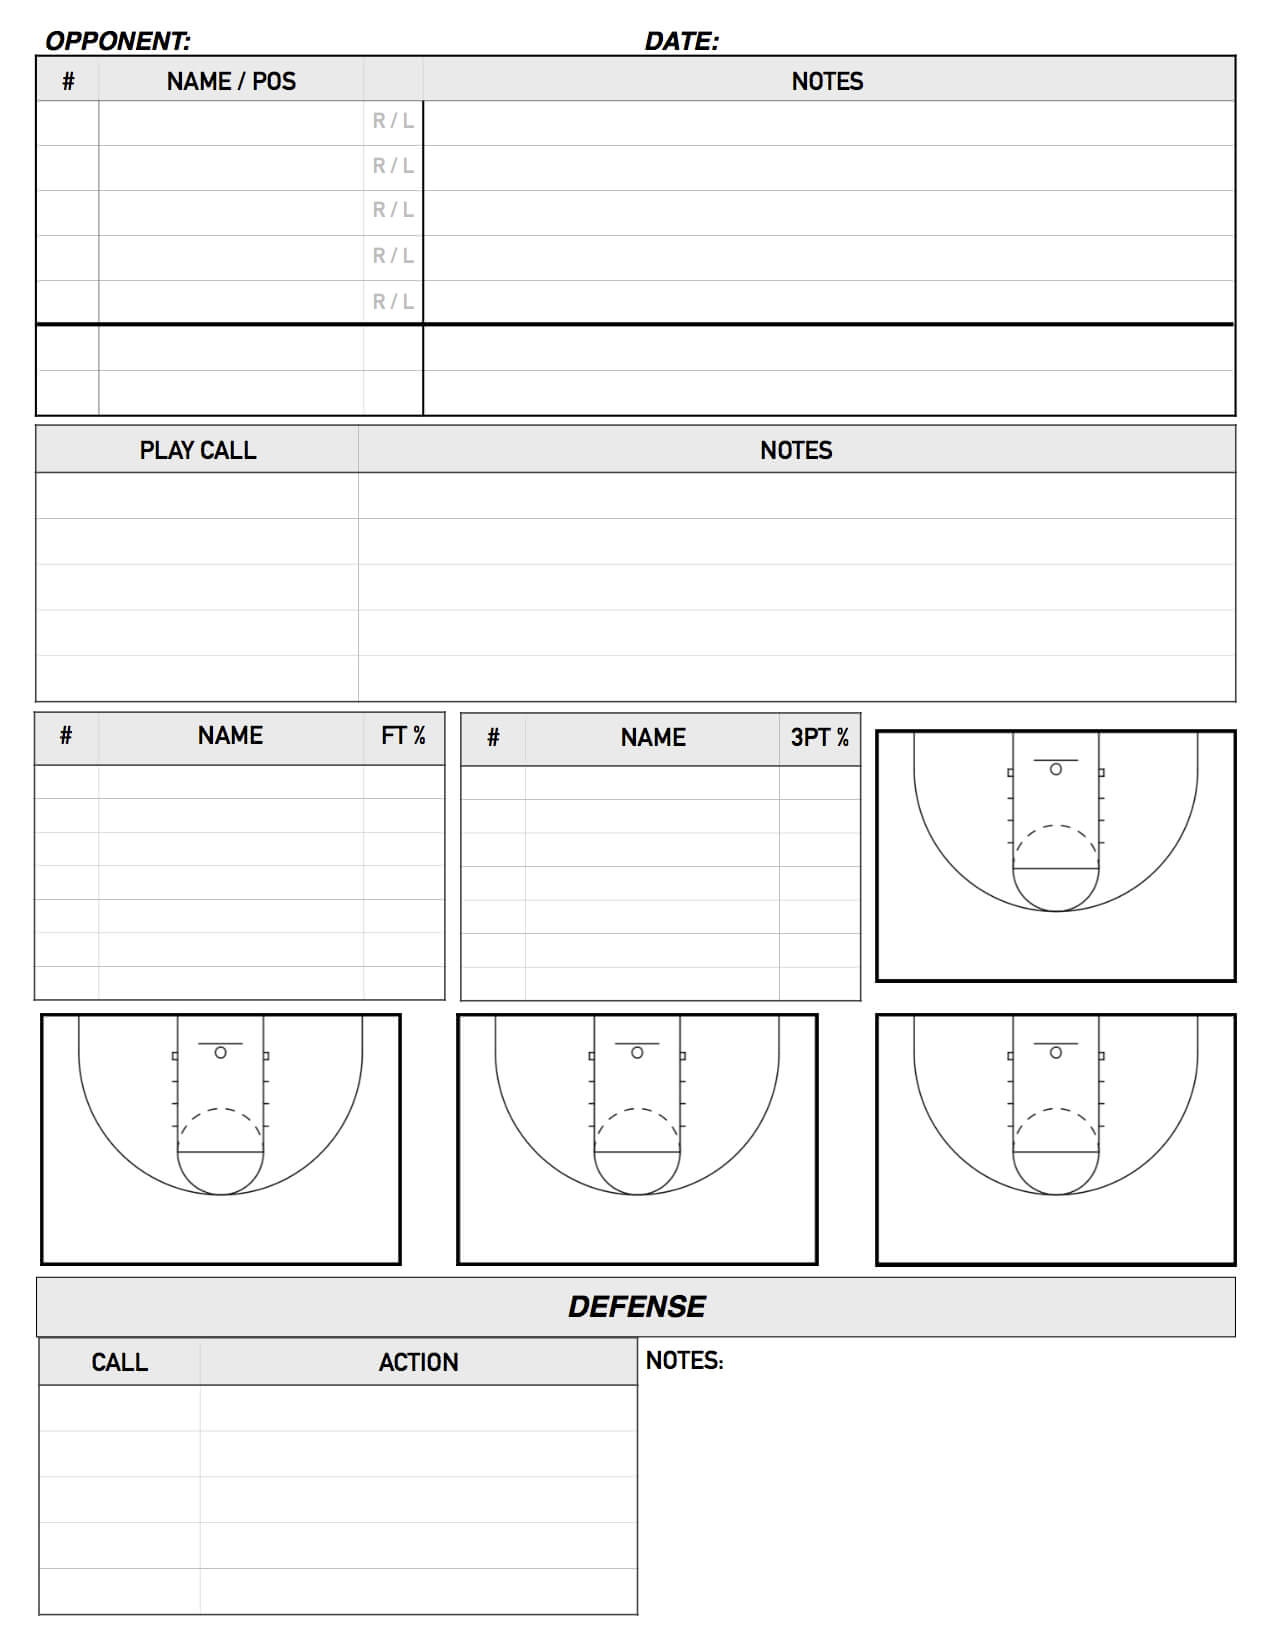 Scouting From The Bench   Basketball   College Basketball intended for Scouting Report Template Basketball